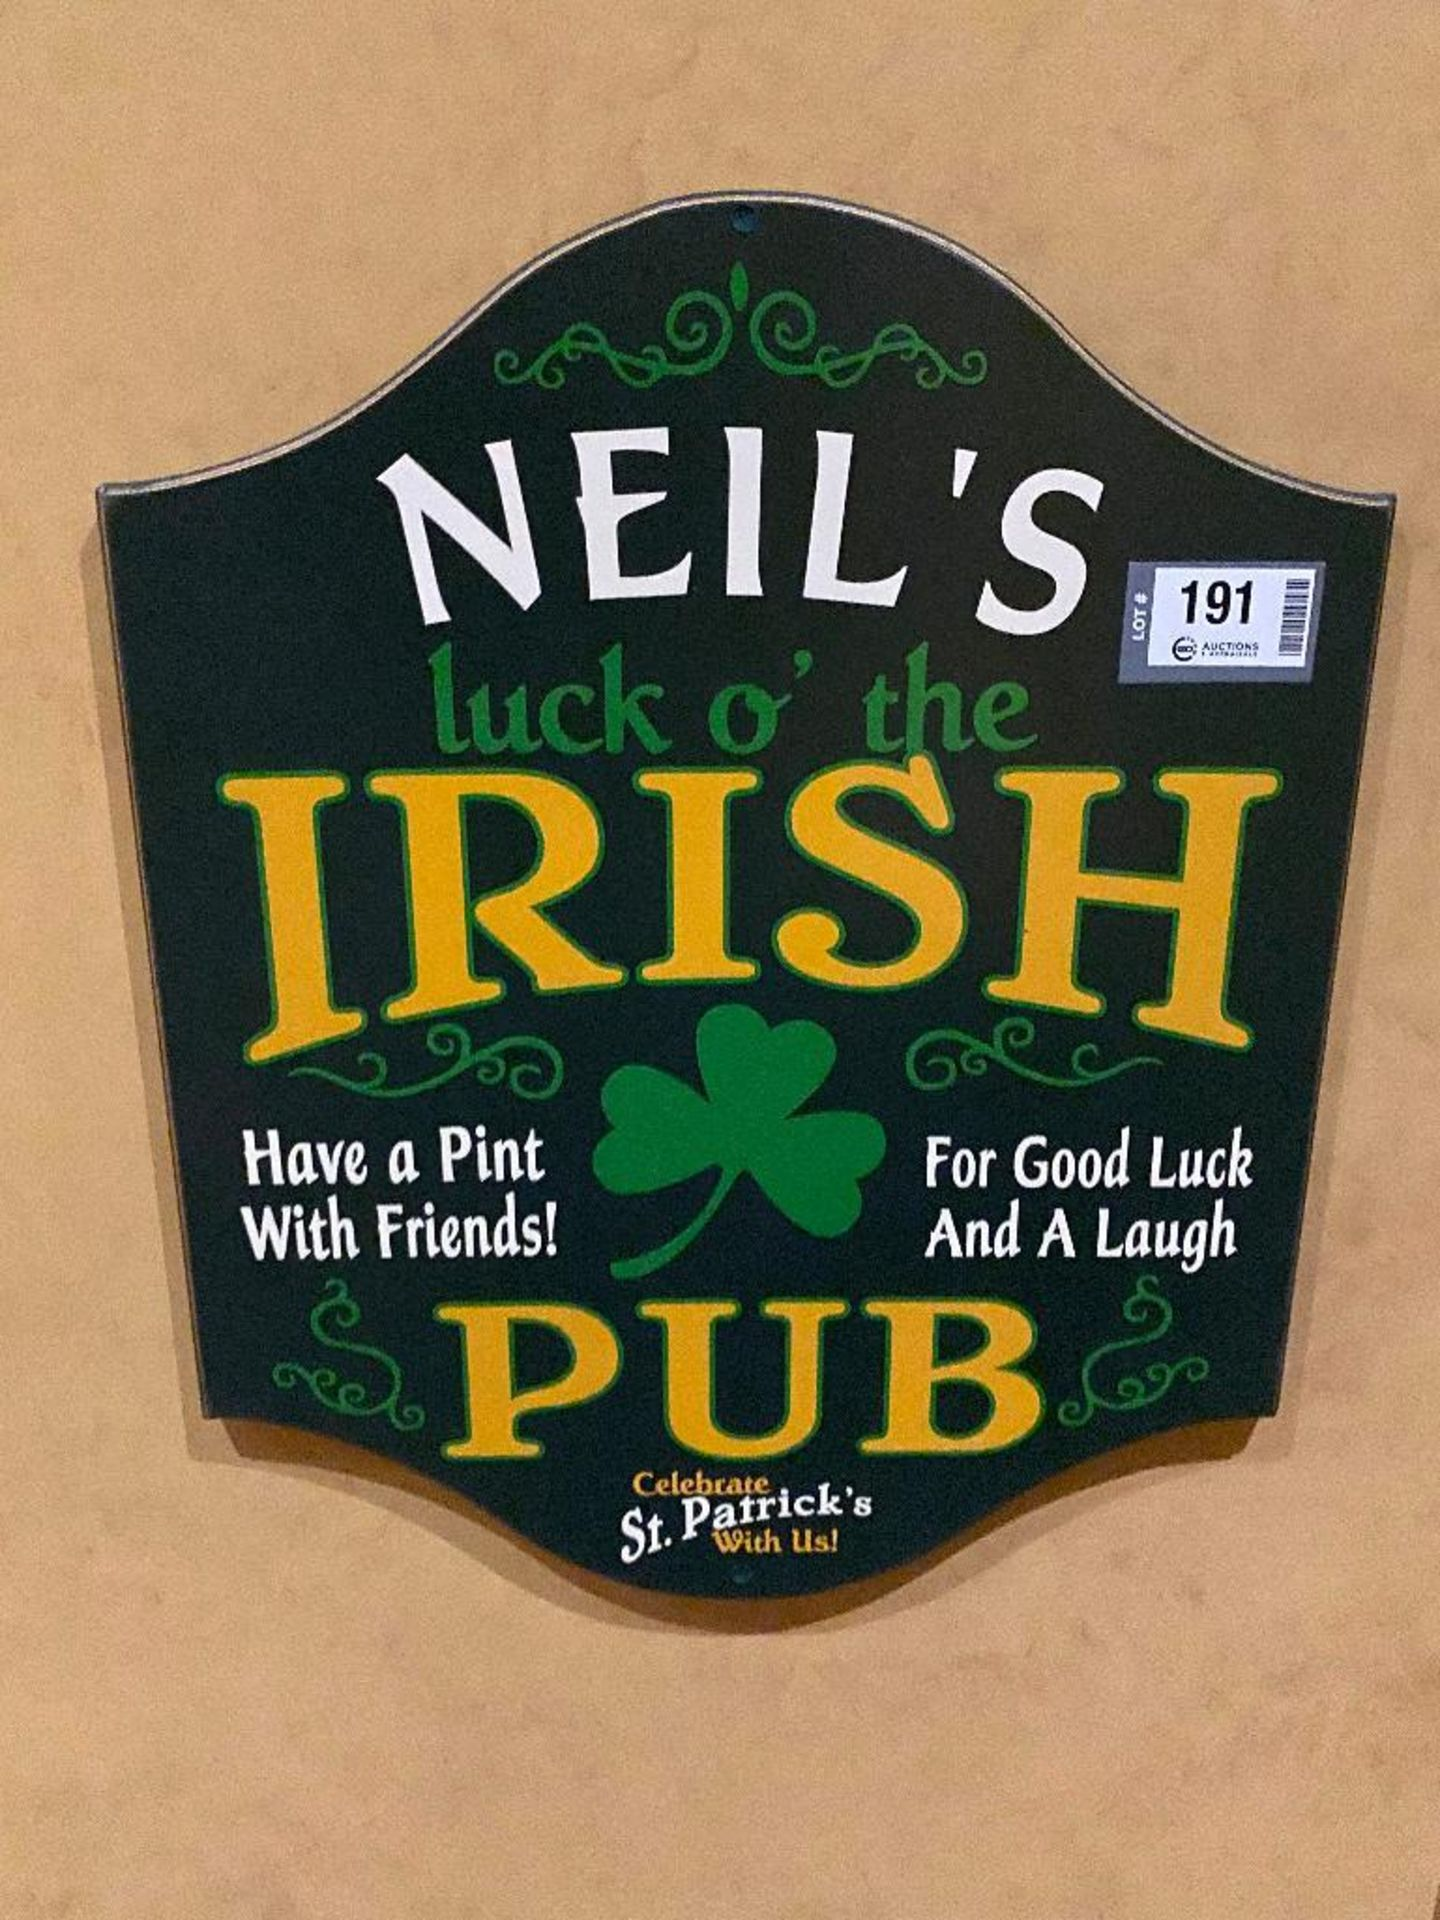 LOT OF (4) FRAMED MEMORABILIA PHOTOS & (1) NEIL'S IRISH PUB PLAQUE - NOTE: REQUIRES REMOVAL FROM WAL - Image 4 of 4